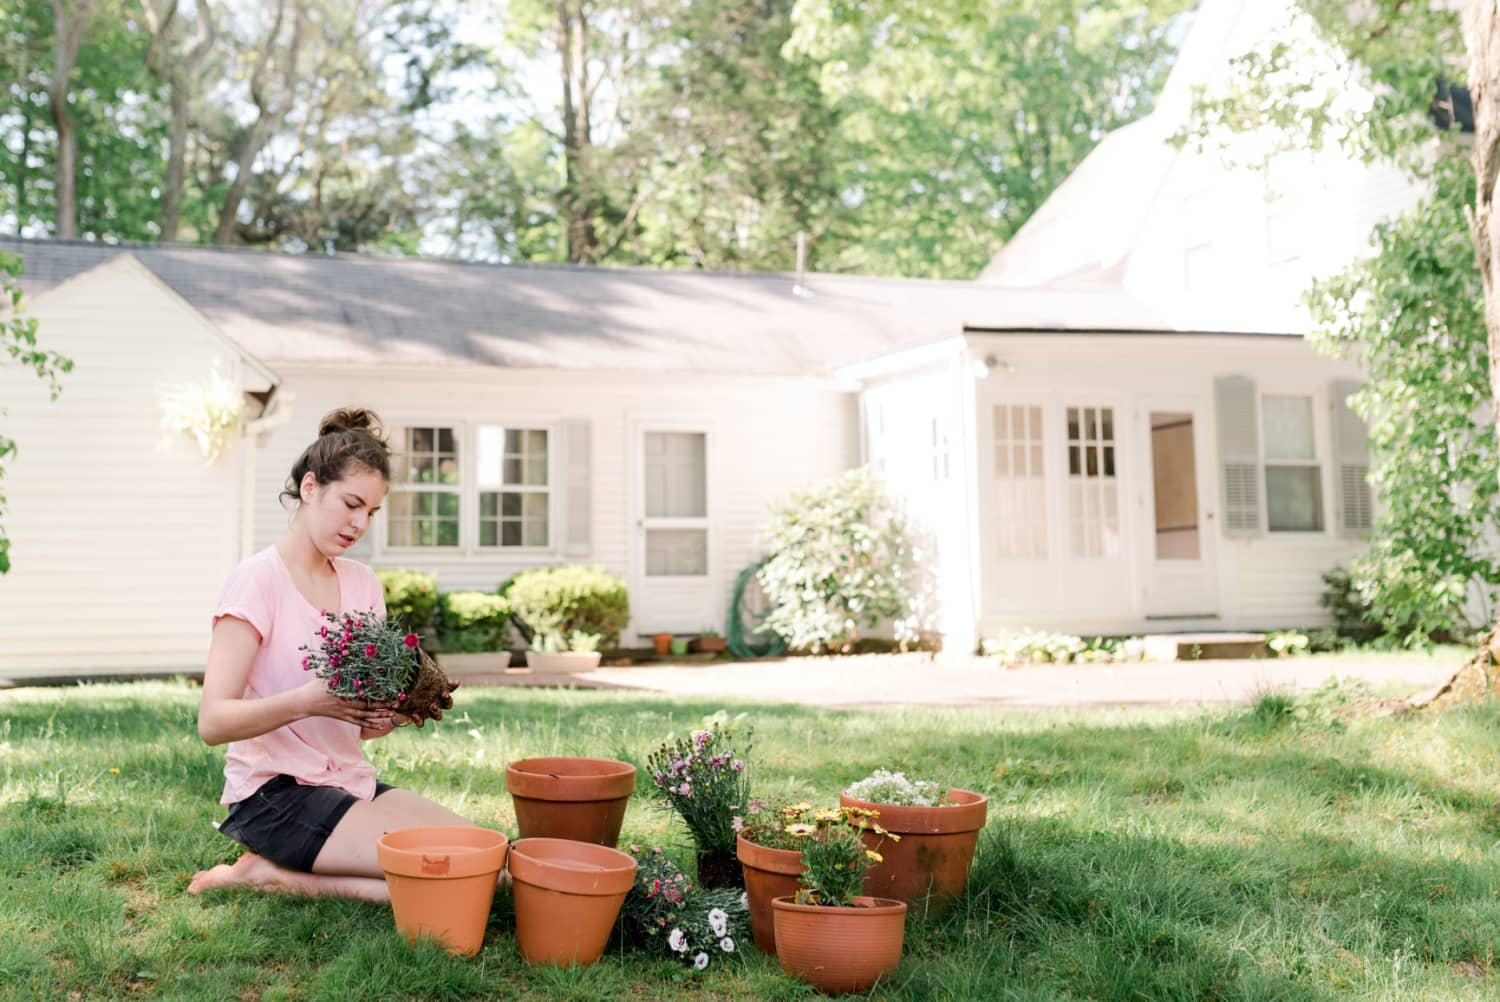 8 Easy Landscaping Hacks (From Someone Who Really Hates Landscaping)